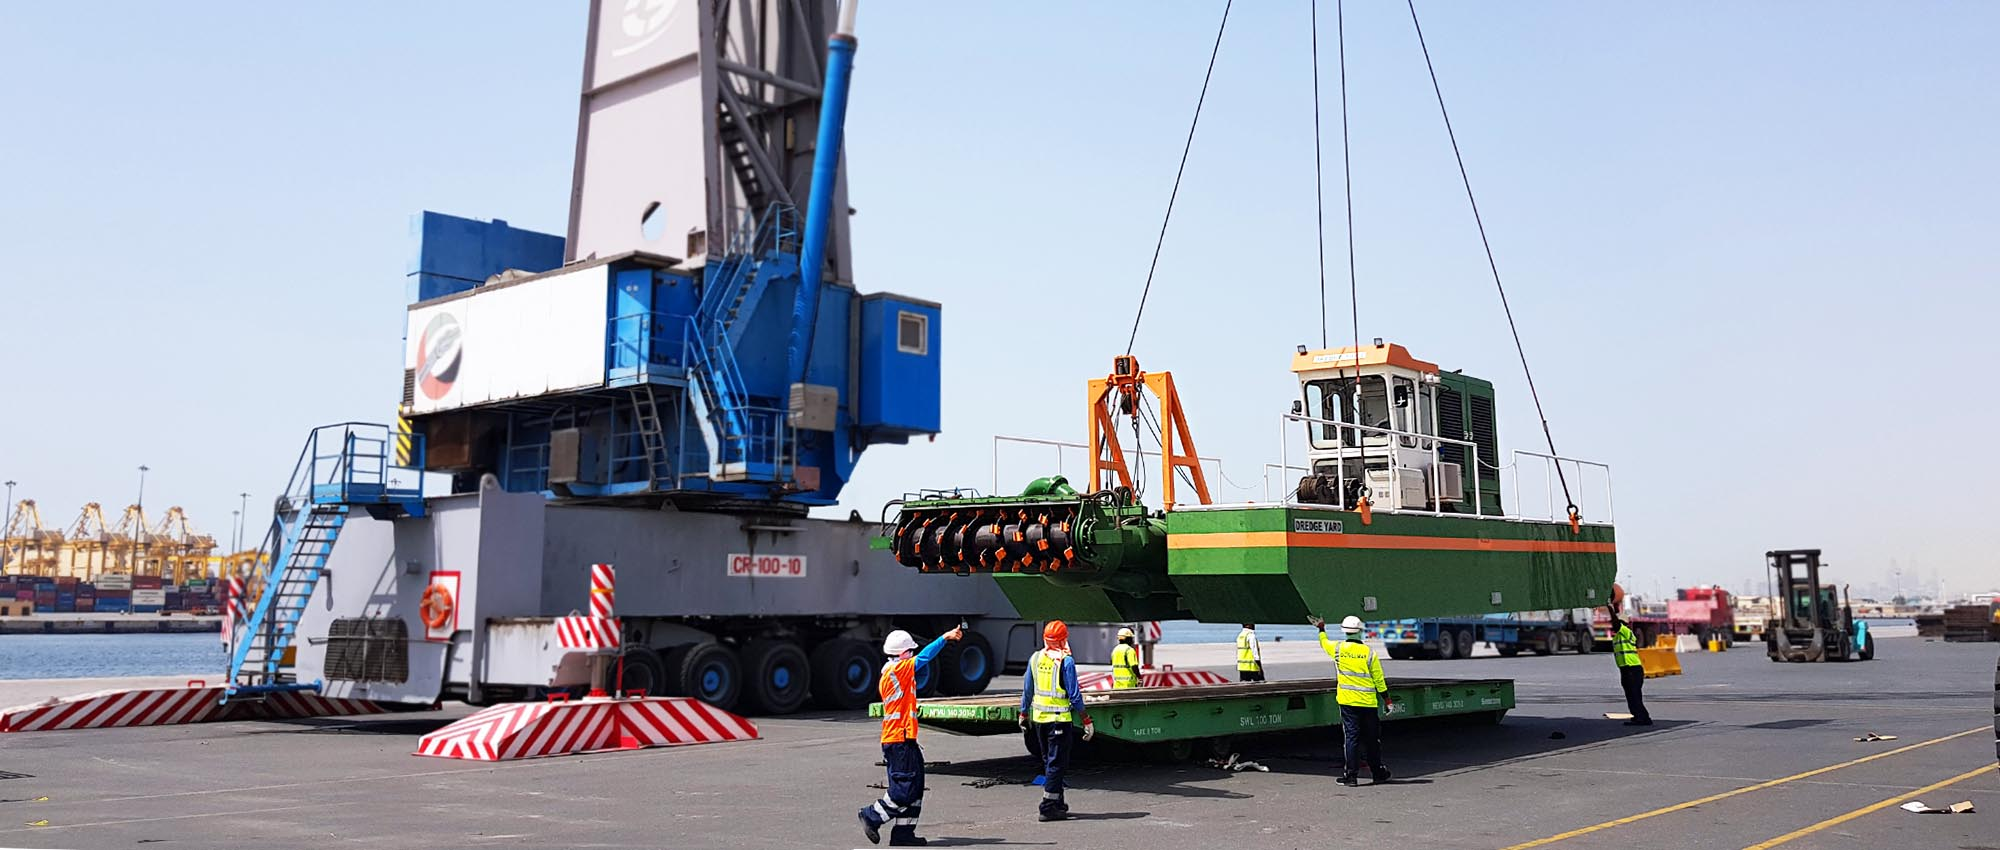 Auger Dredger ECO 200 lifted by crane